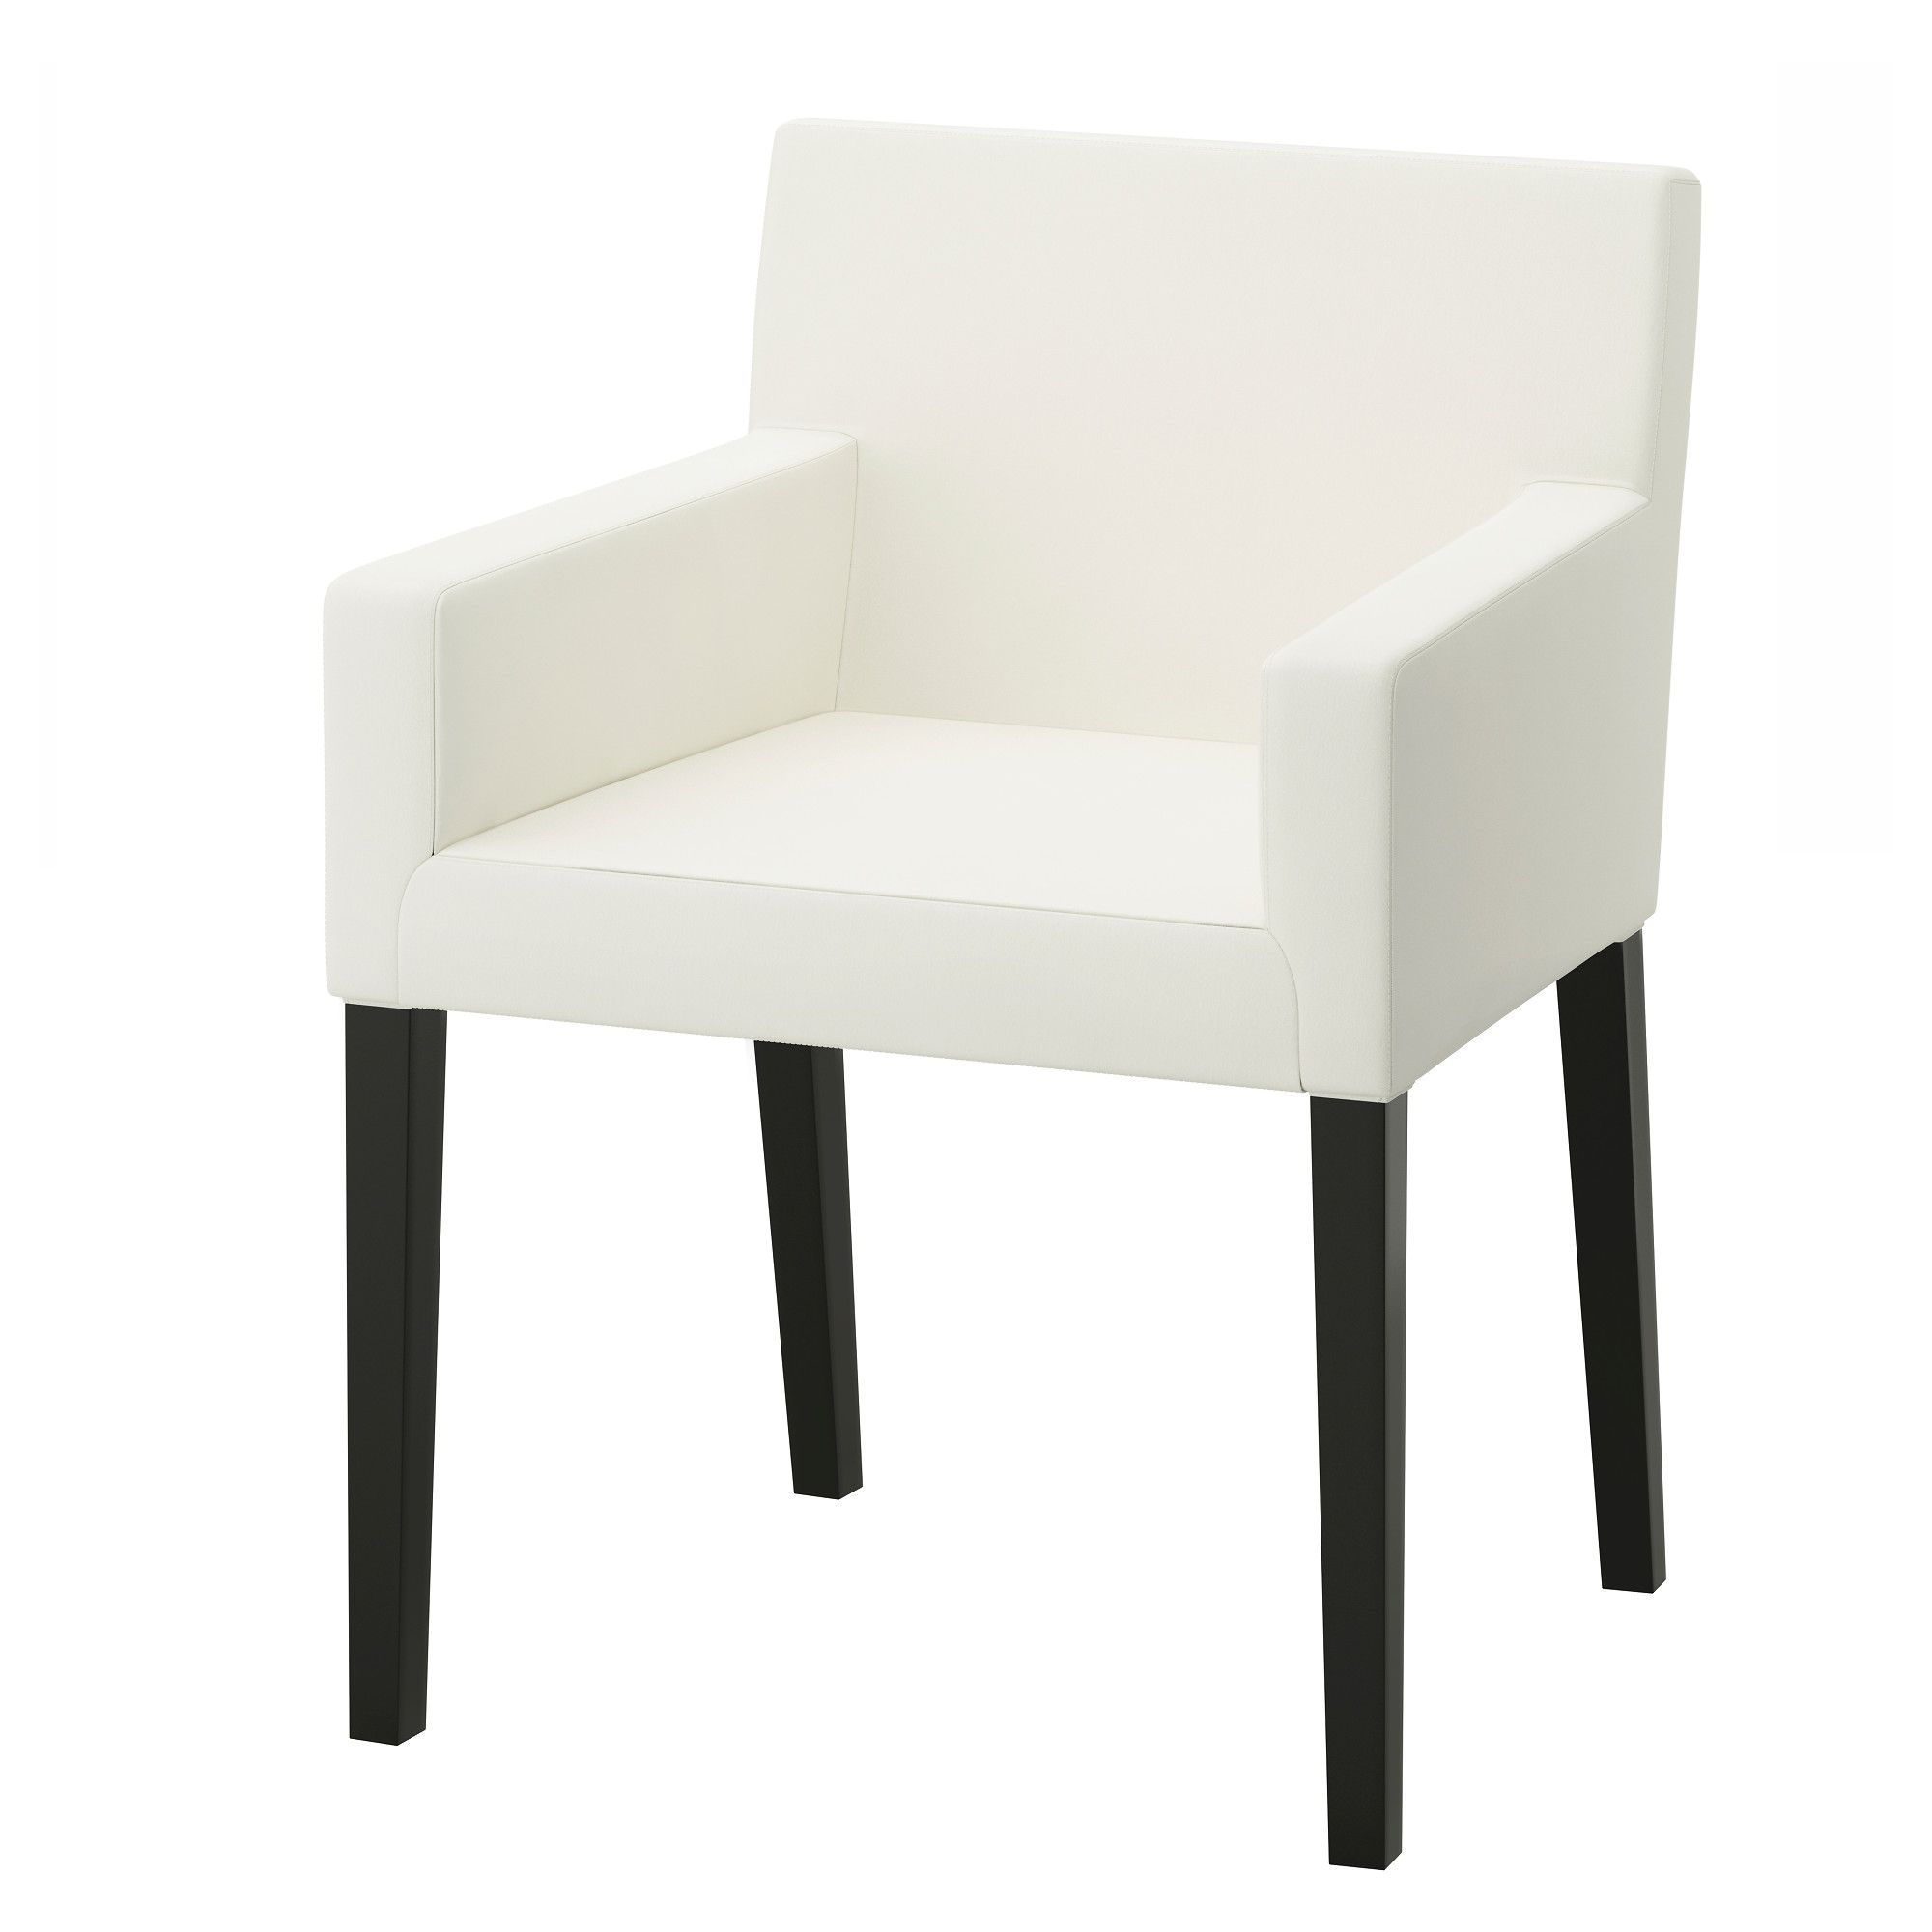 Ikea Us Furniture And Home Furnishings Scandinavian Dining Room Ikea Dining Chair Ikea Dining